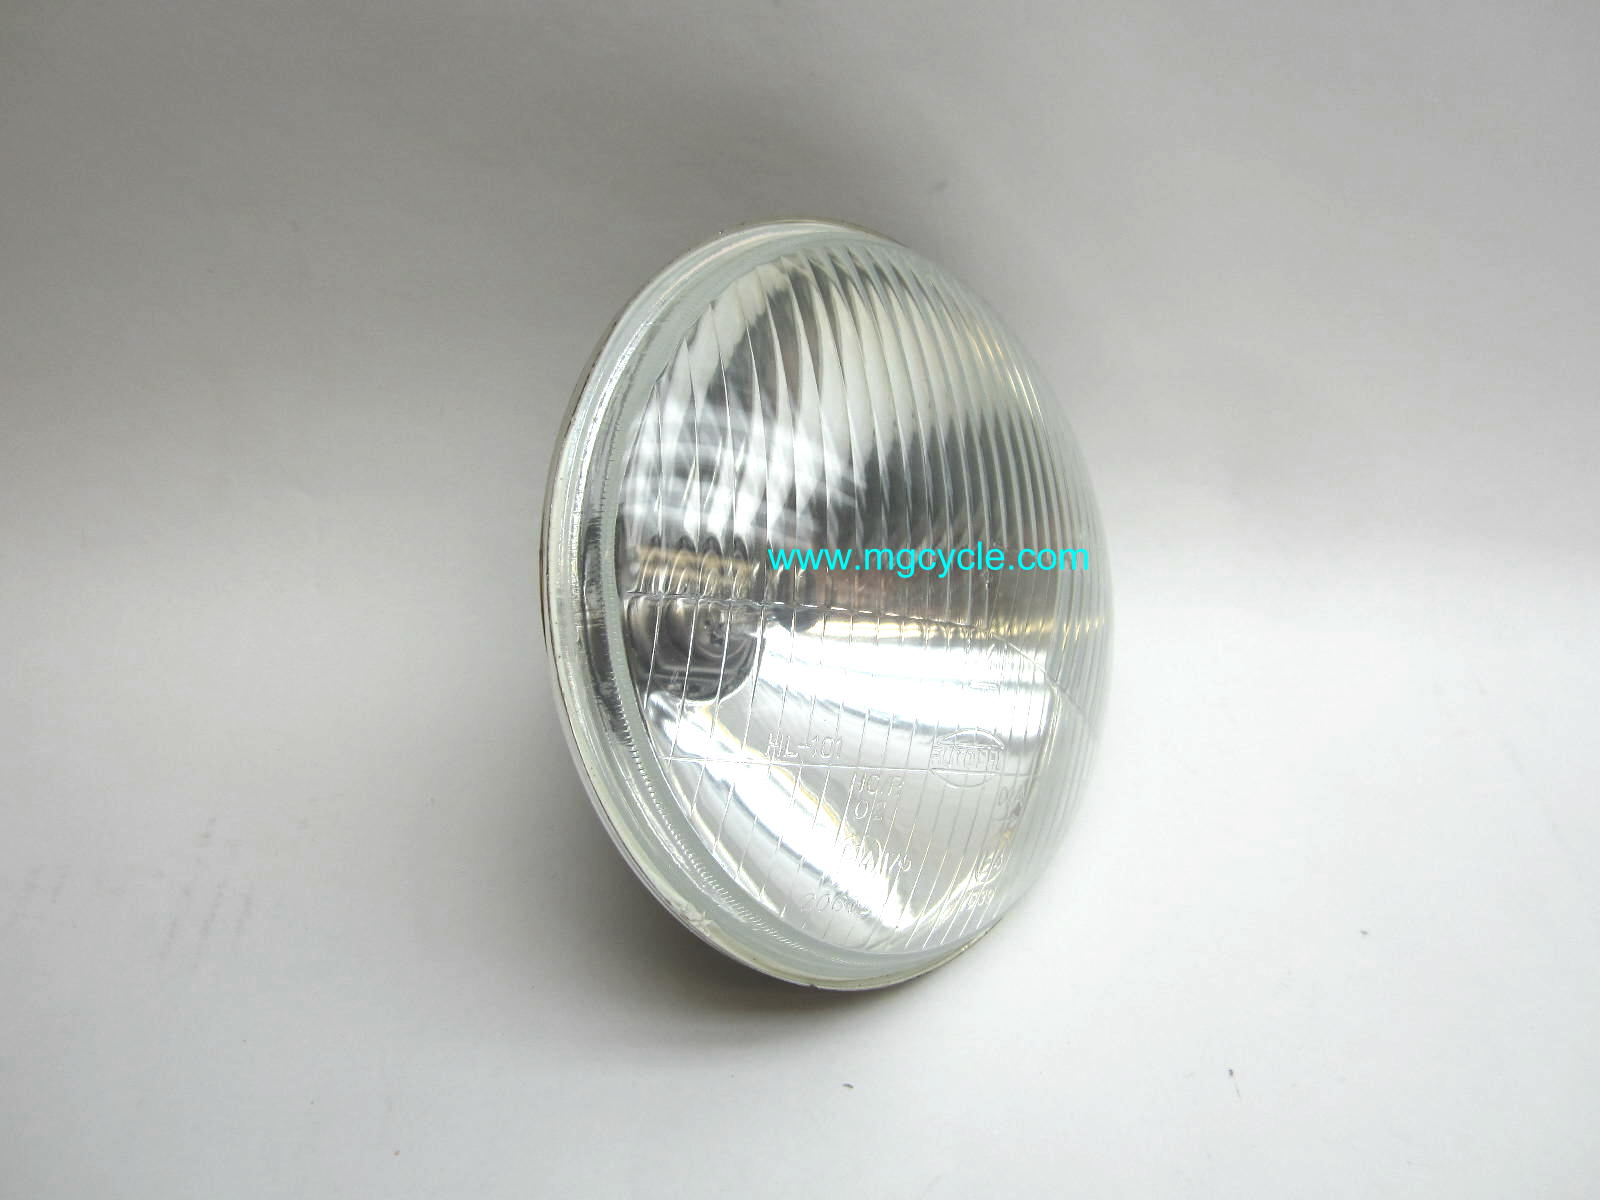 "7"" headlight, lens and reflector with H4 60-55 halogen bulb"